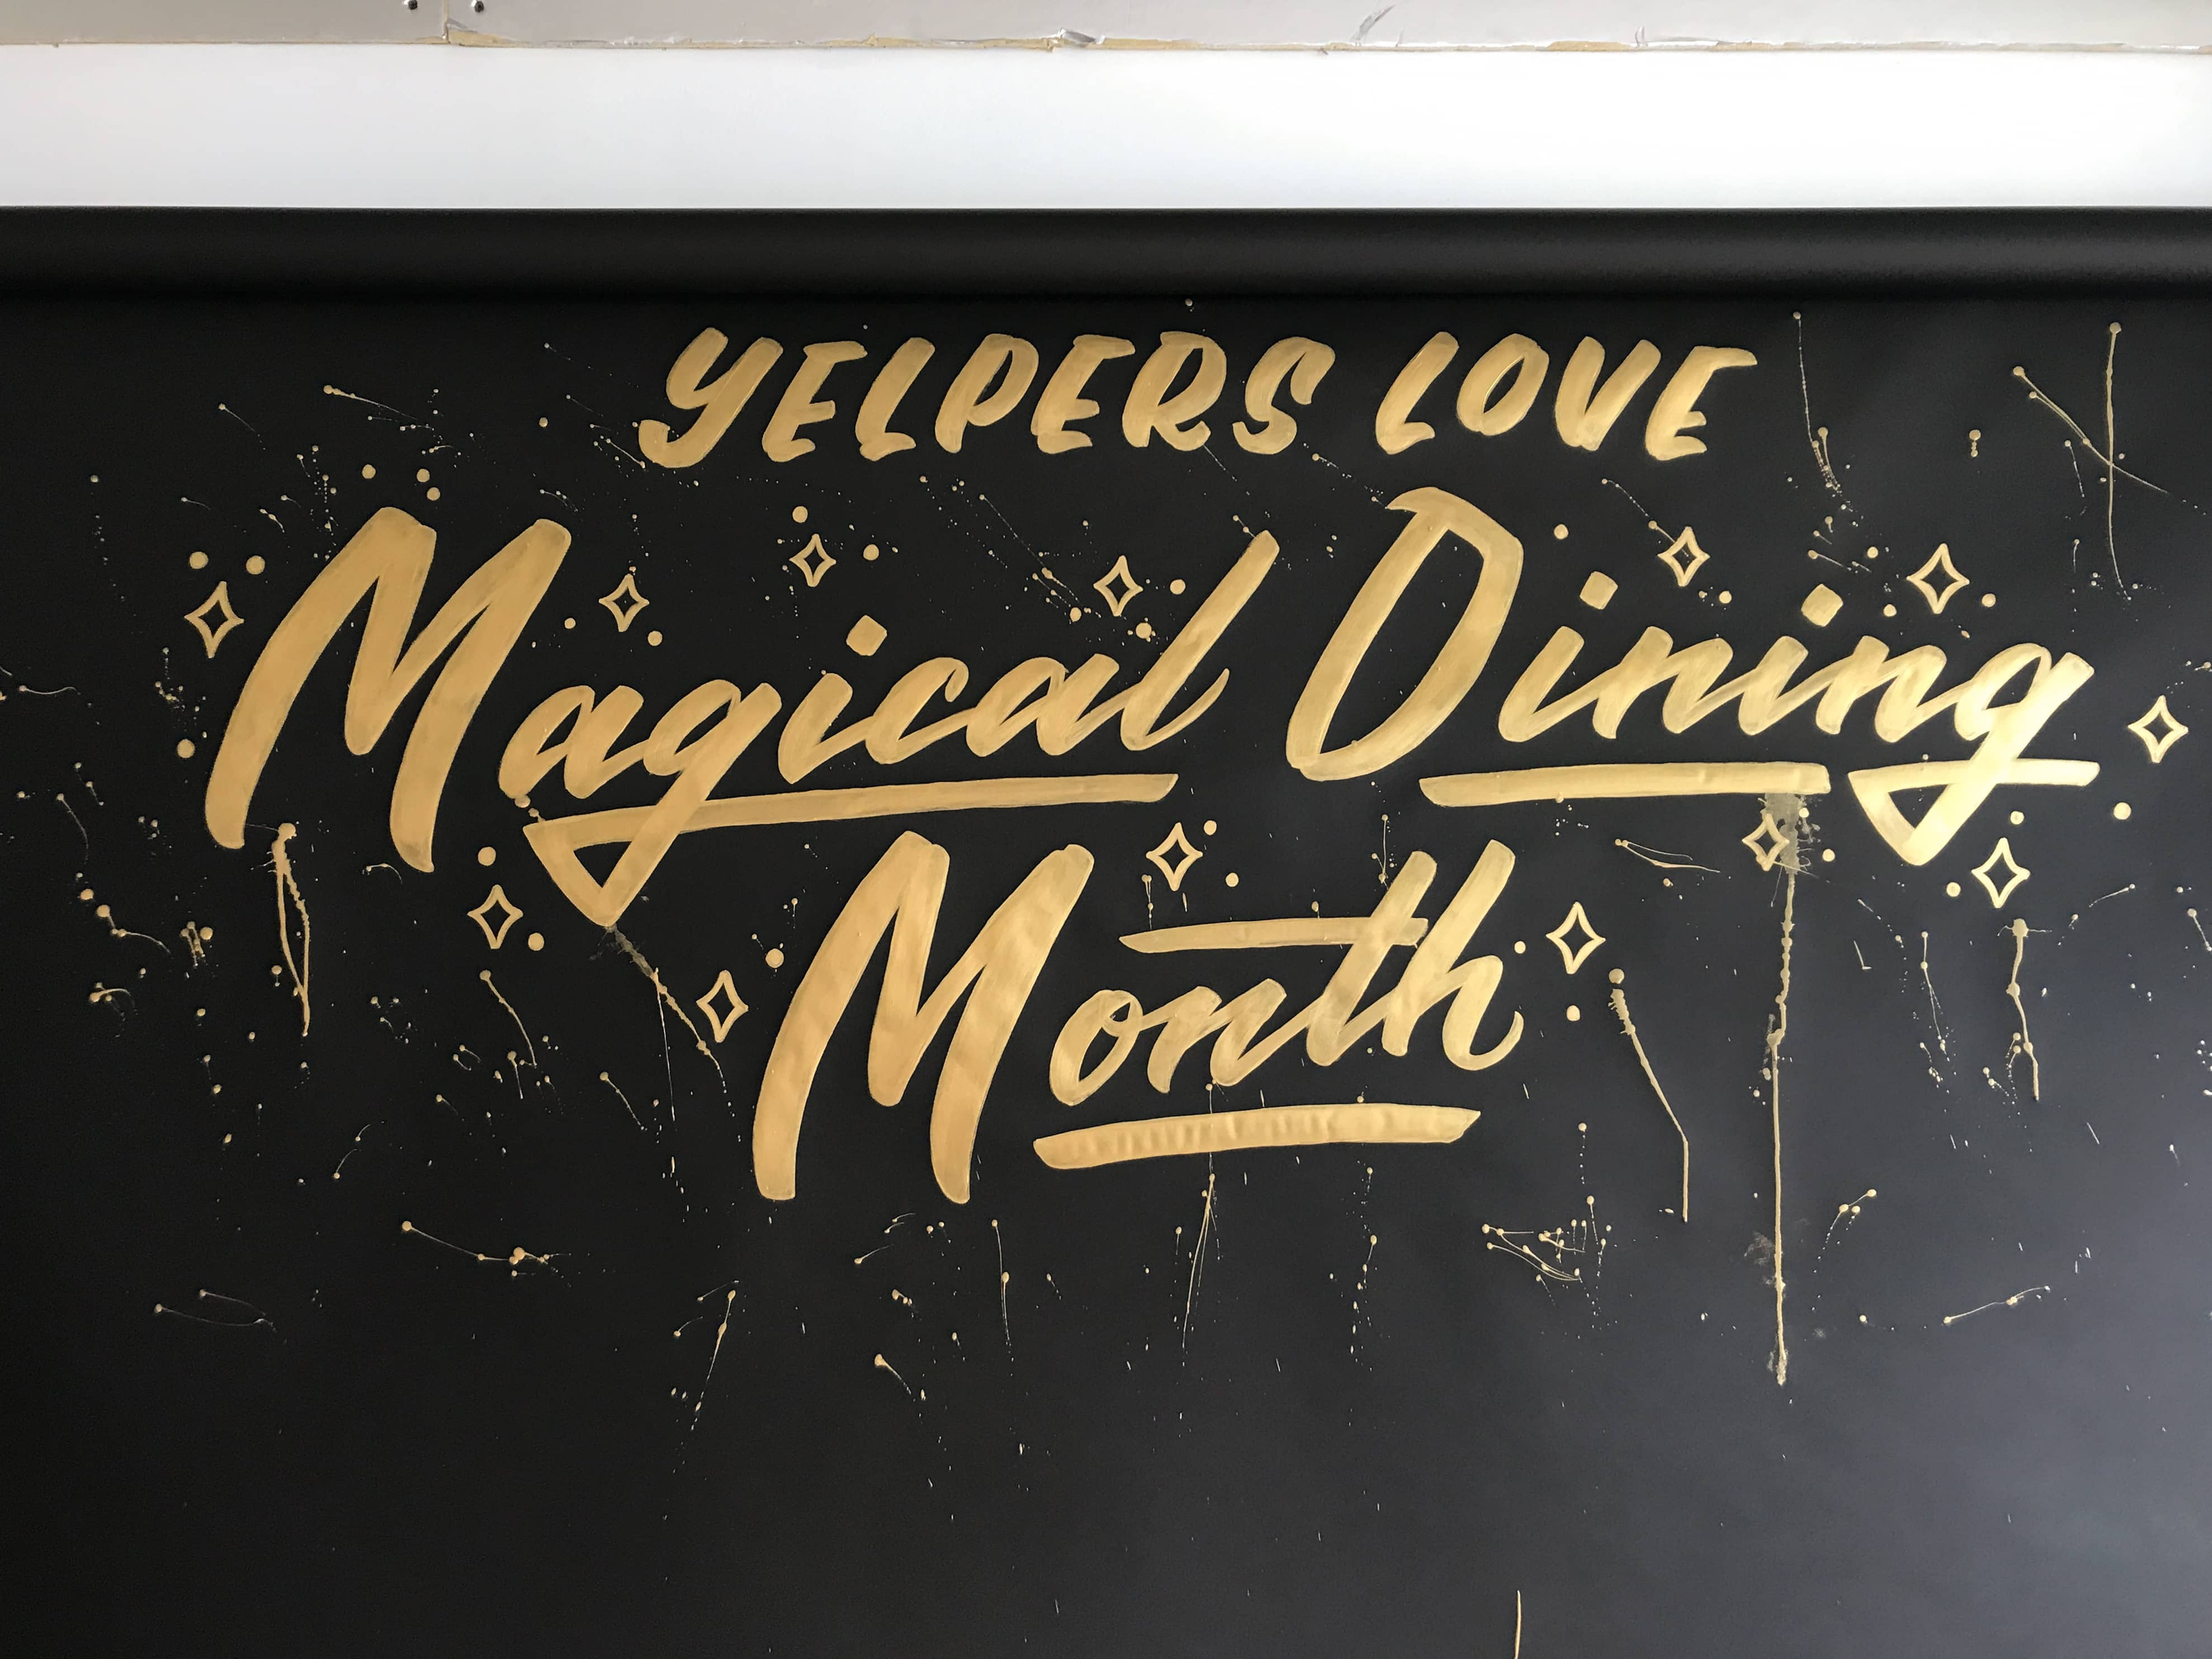 Yelp Magical Dining Month hand lettering by Hillery Powers photo backdrop in Millenia Mall